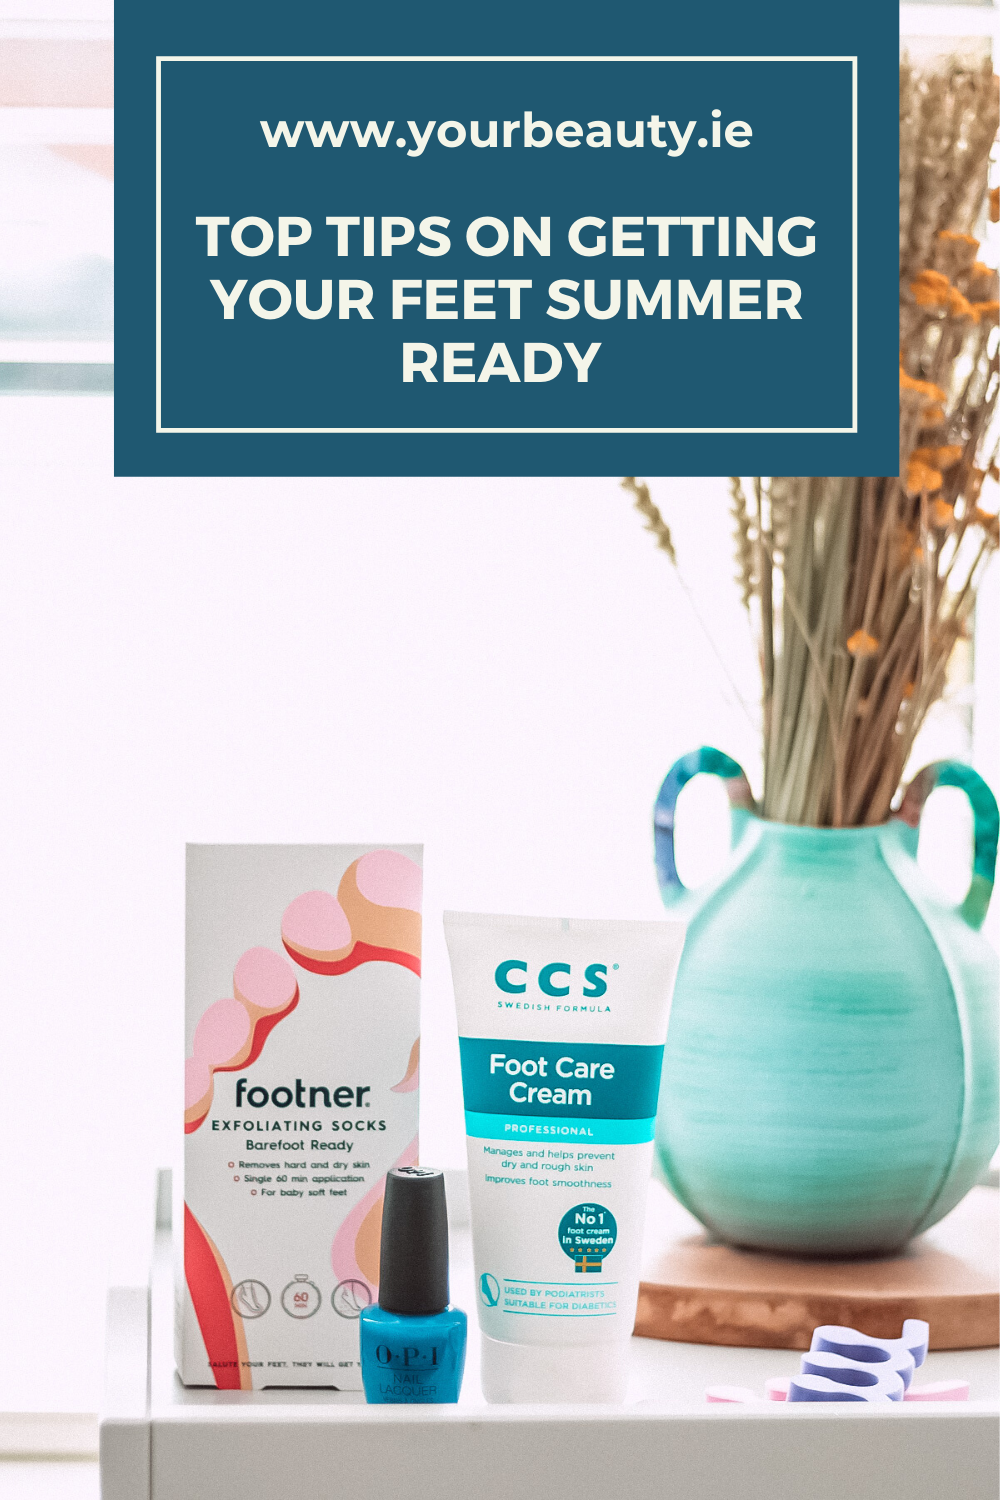 Top Tips On Getting Your Feet Summer Ready